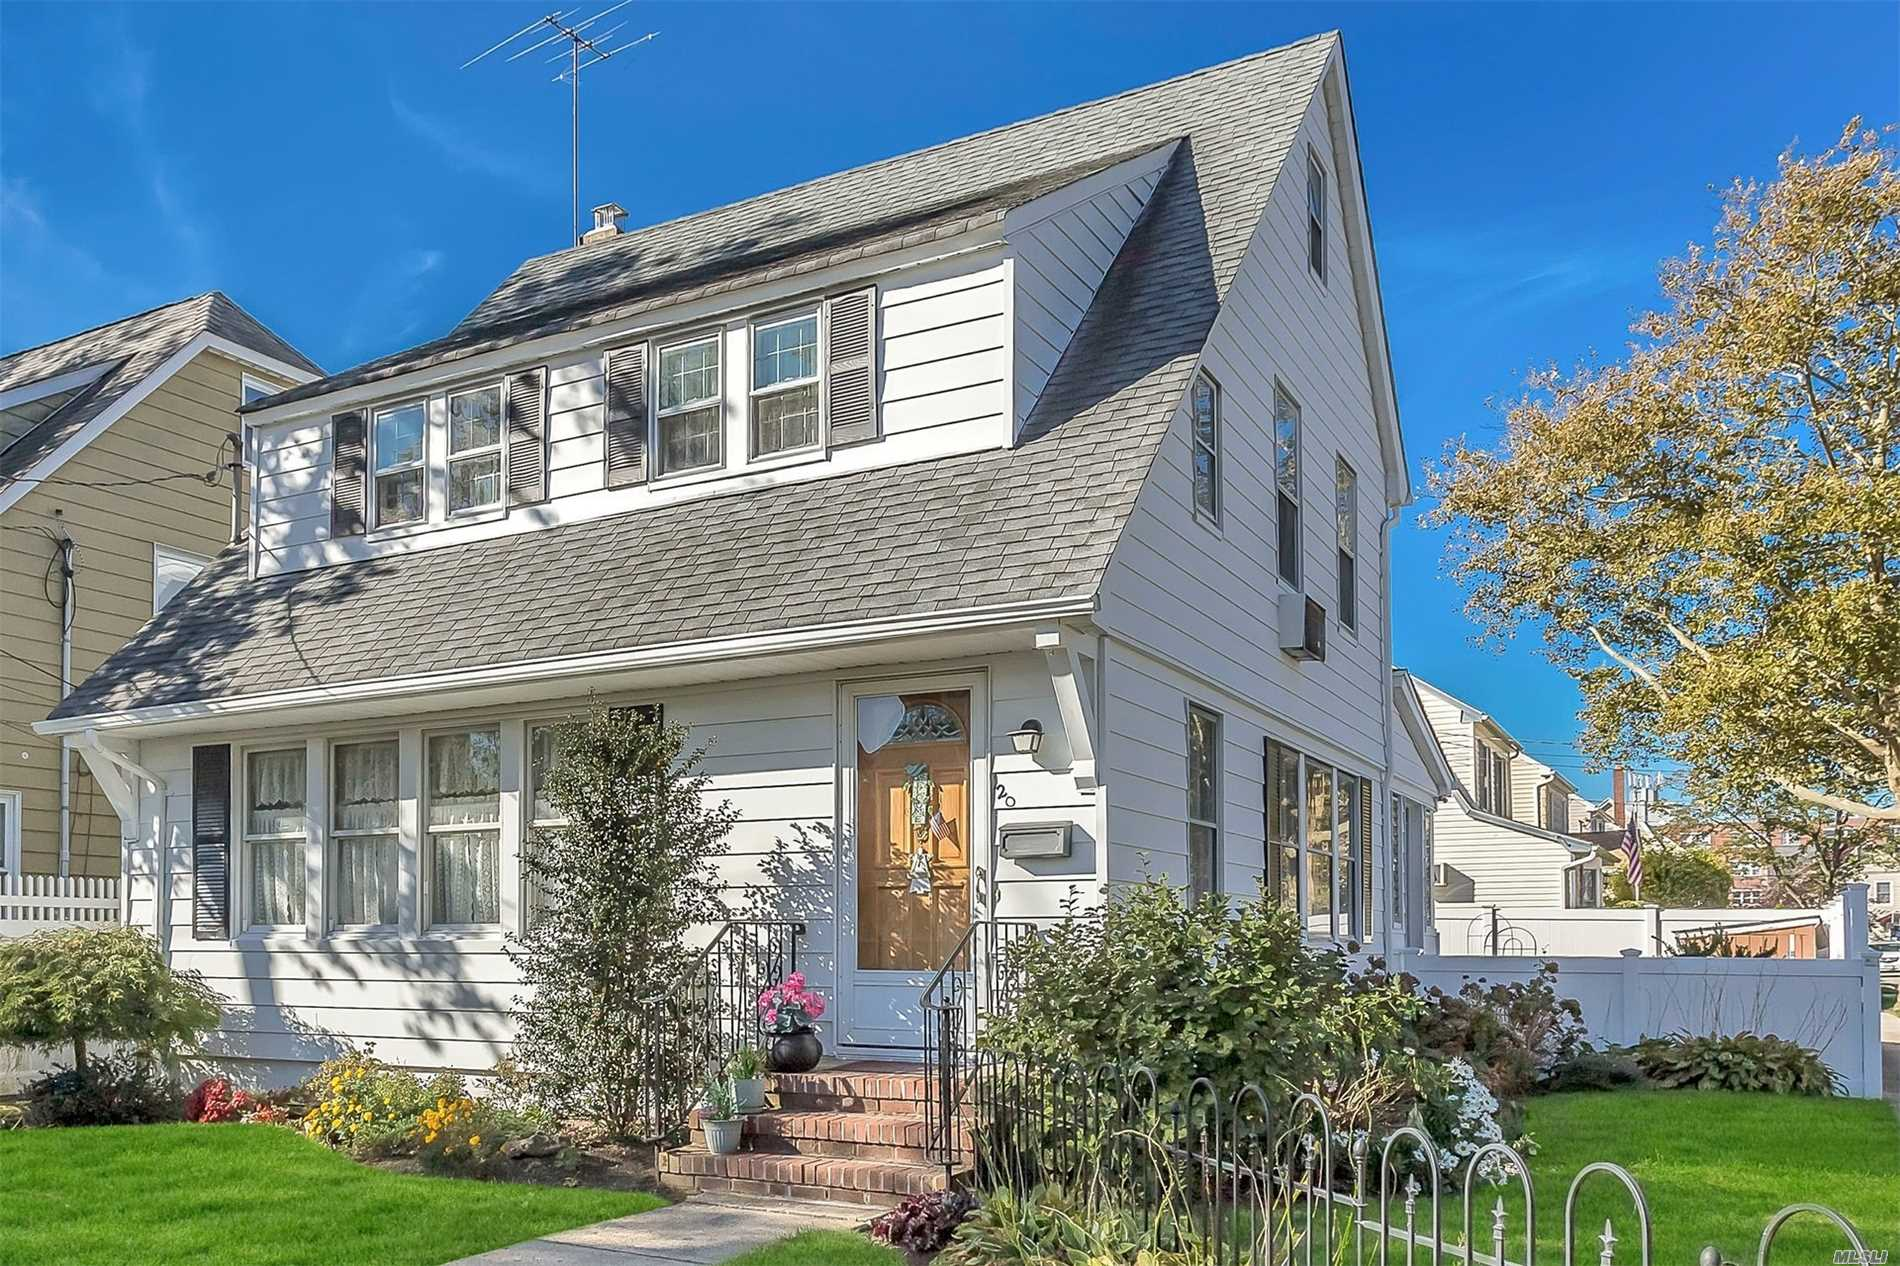 Charming 3 Bedroom, 2 Bath, 2 Car Garage, Basement Colonial In Prime College Section. Nice Corner Property .Centrally Located To Community Pool & Park, Rail, Highways, Shopping. Hardwood Floors, Roof 6Yrs, Newer Gas Heating. Hurry, Don't Miss!